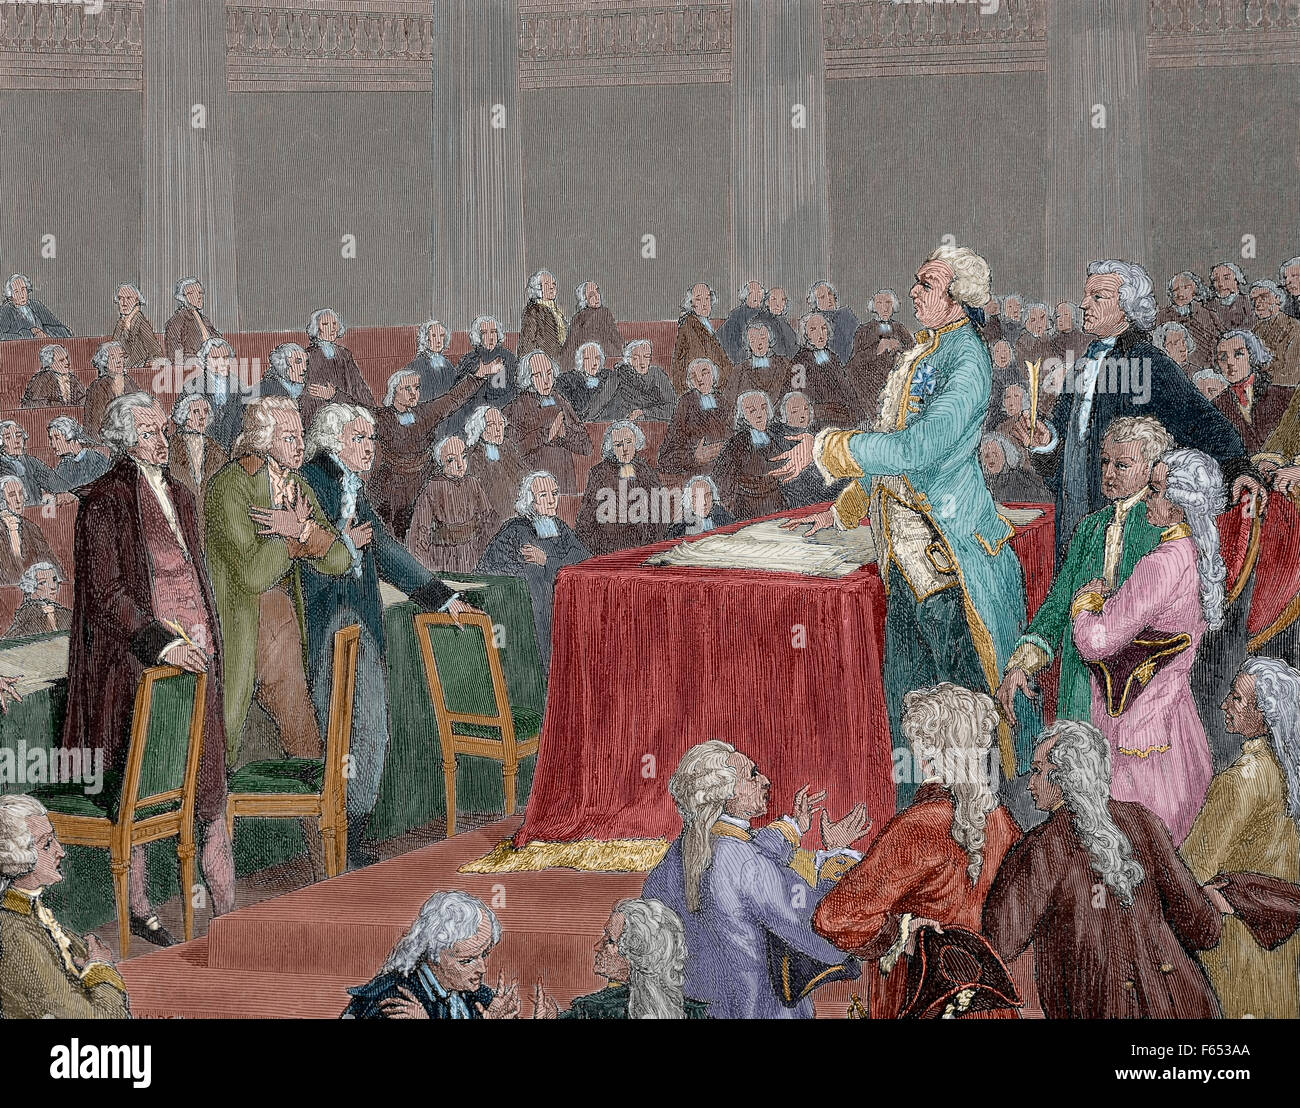 Frech Revolution 1787-1799.  Louis XVI was forced to adopt the Constitution of 1791 by the National Assembly. Engraving - Stock Image